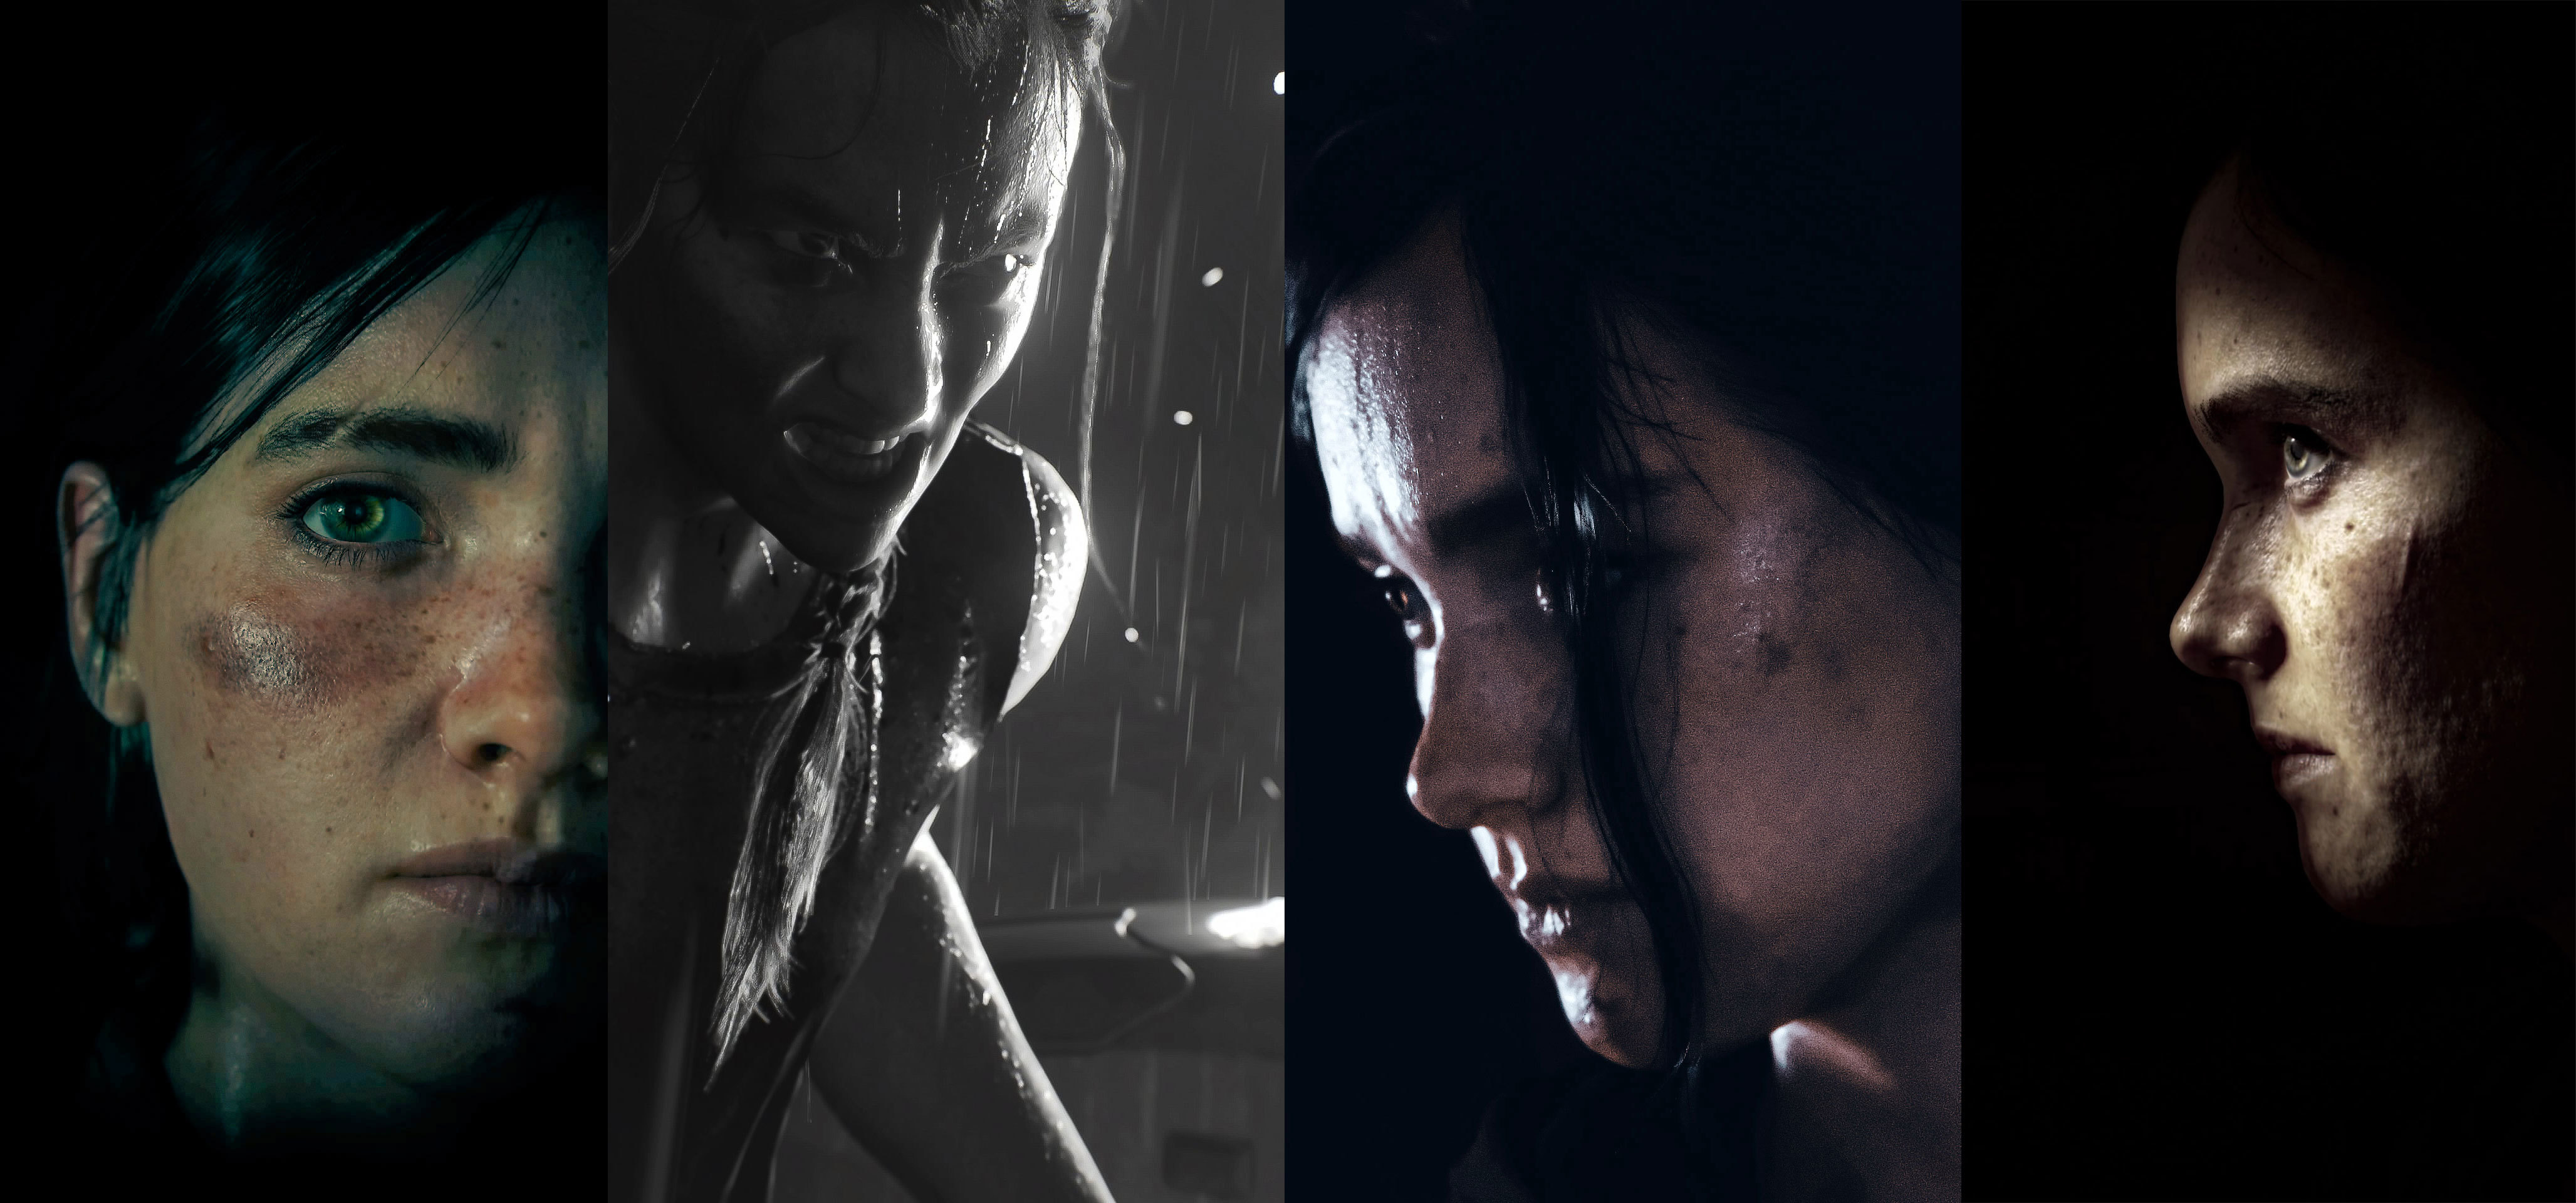 Week 1: The Last of Us Photo Mode Community Event